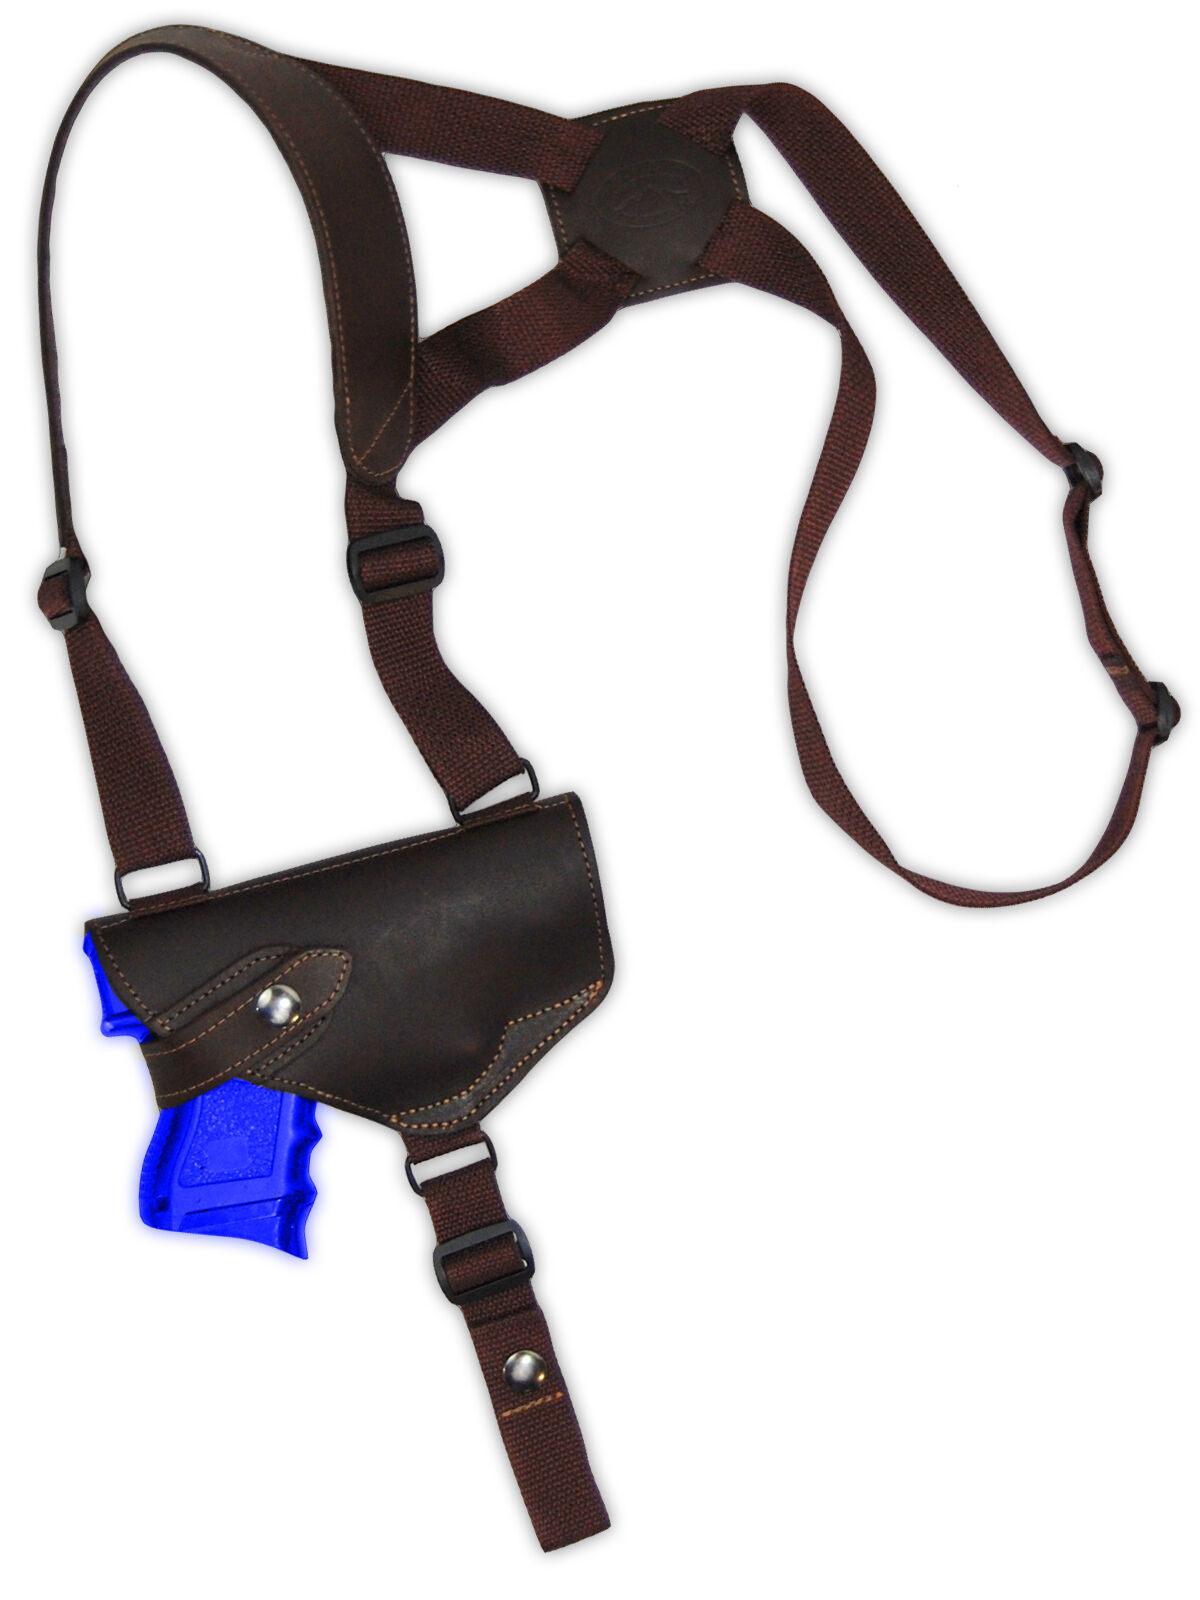 NEW Barsony Horizontal Braun Leder Shoulder Holster S&W, M&P Comp 9mm 40 45